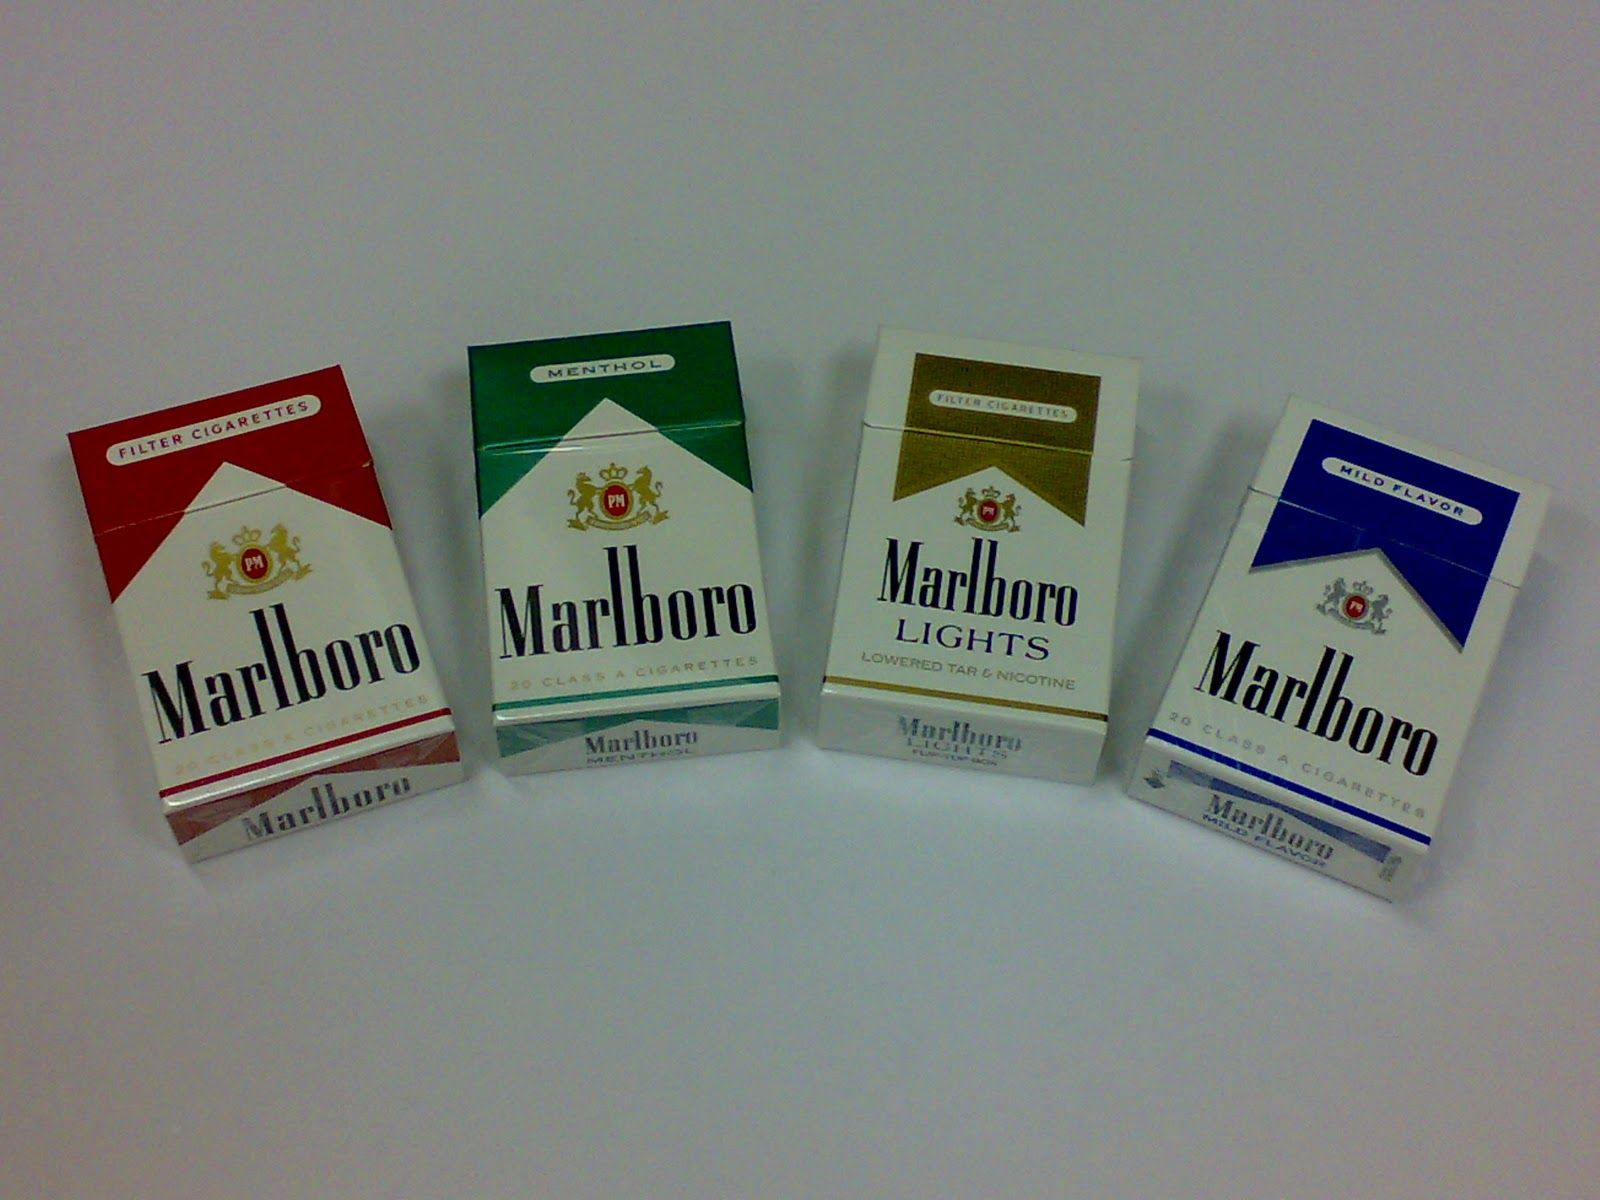 List brands of cigarettes Marlboro in Pennsylvania